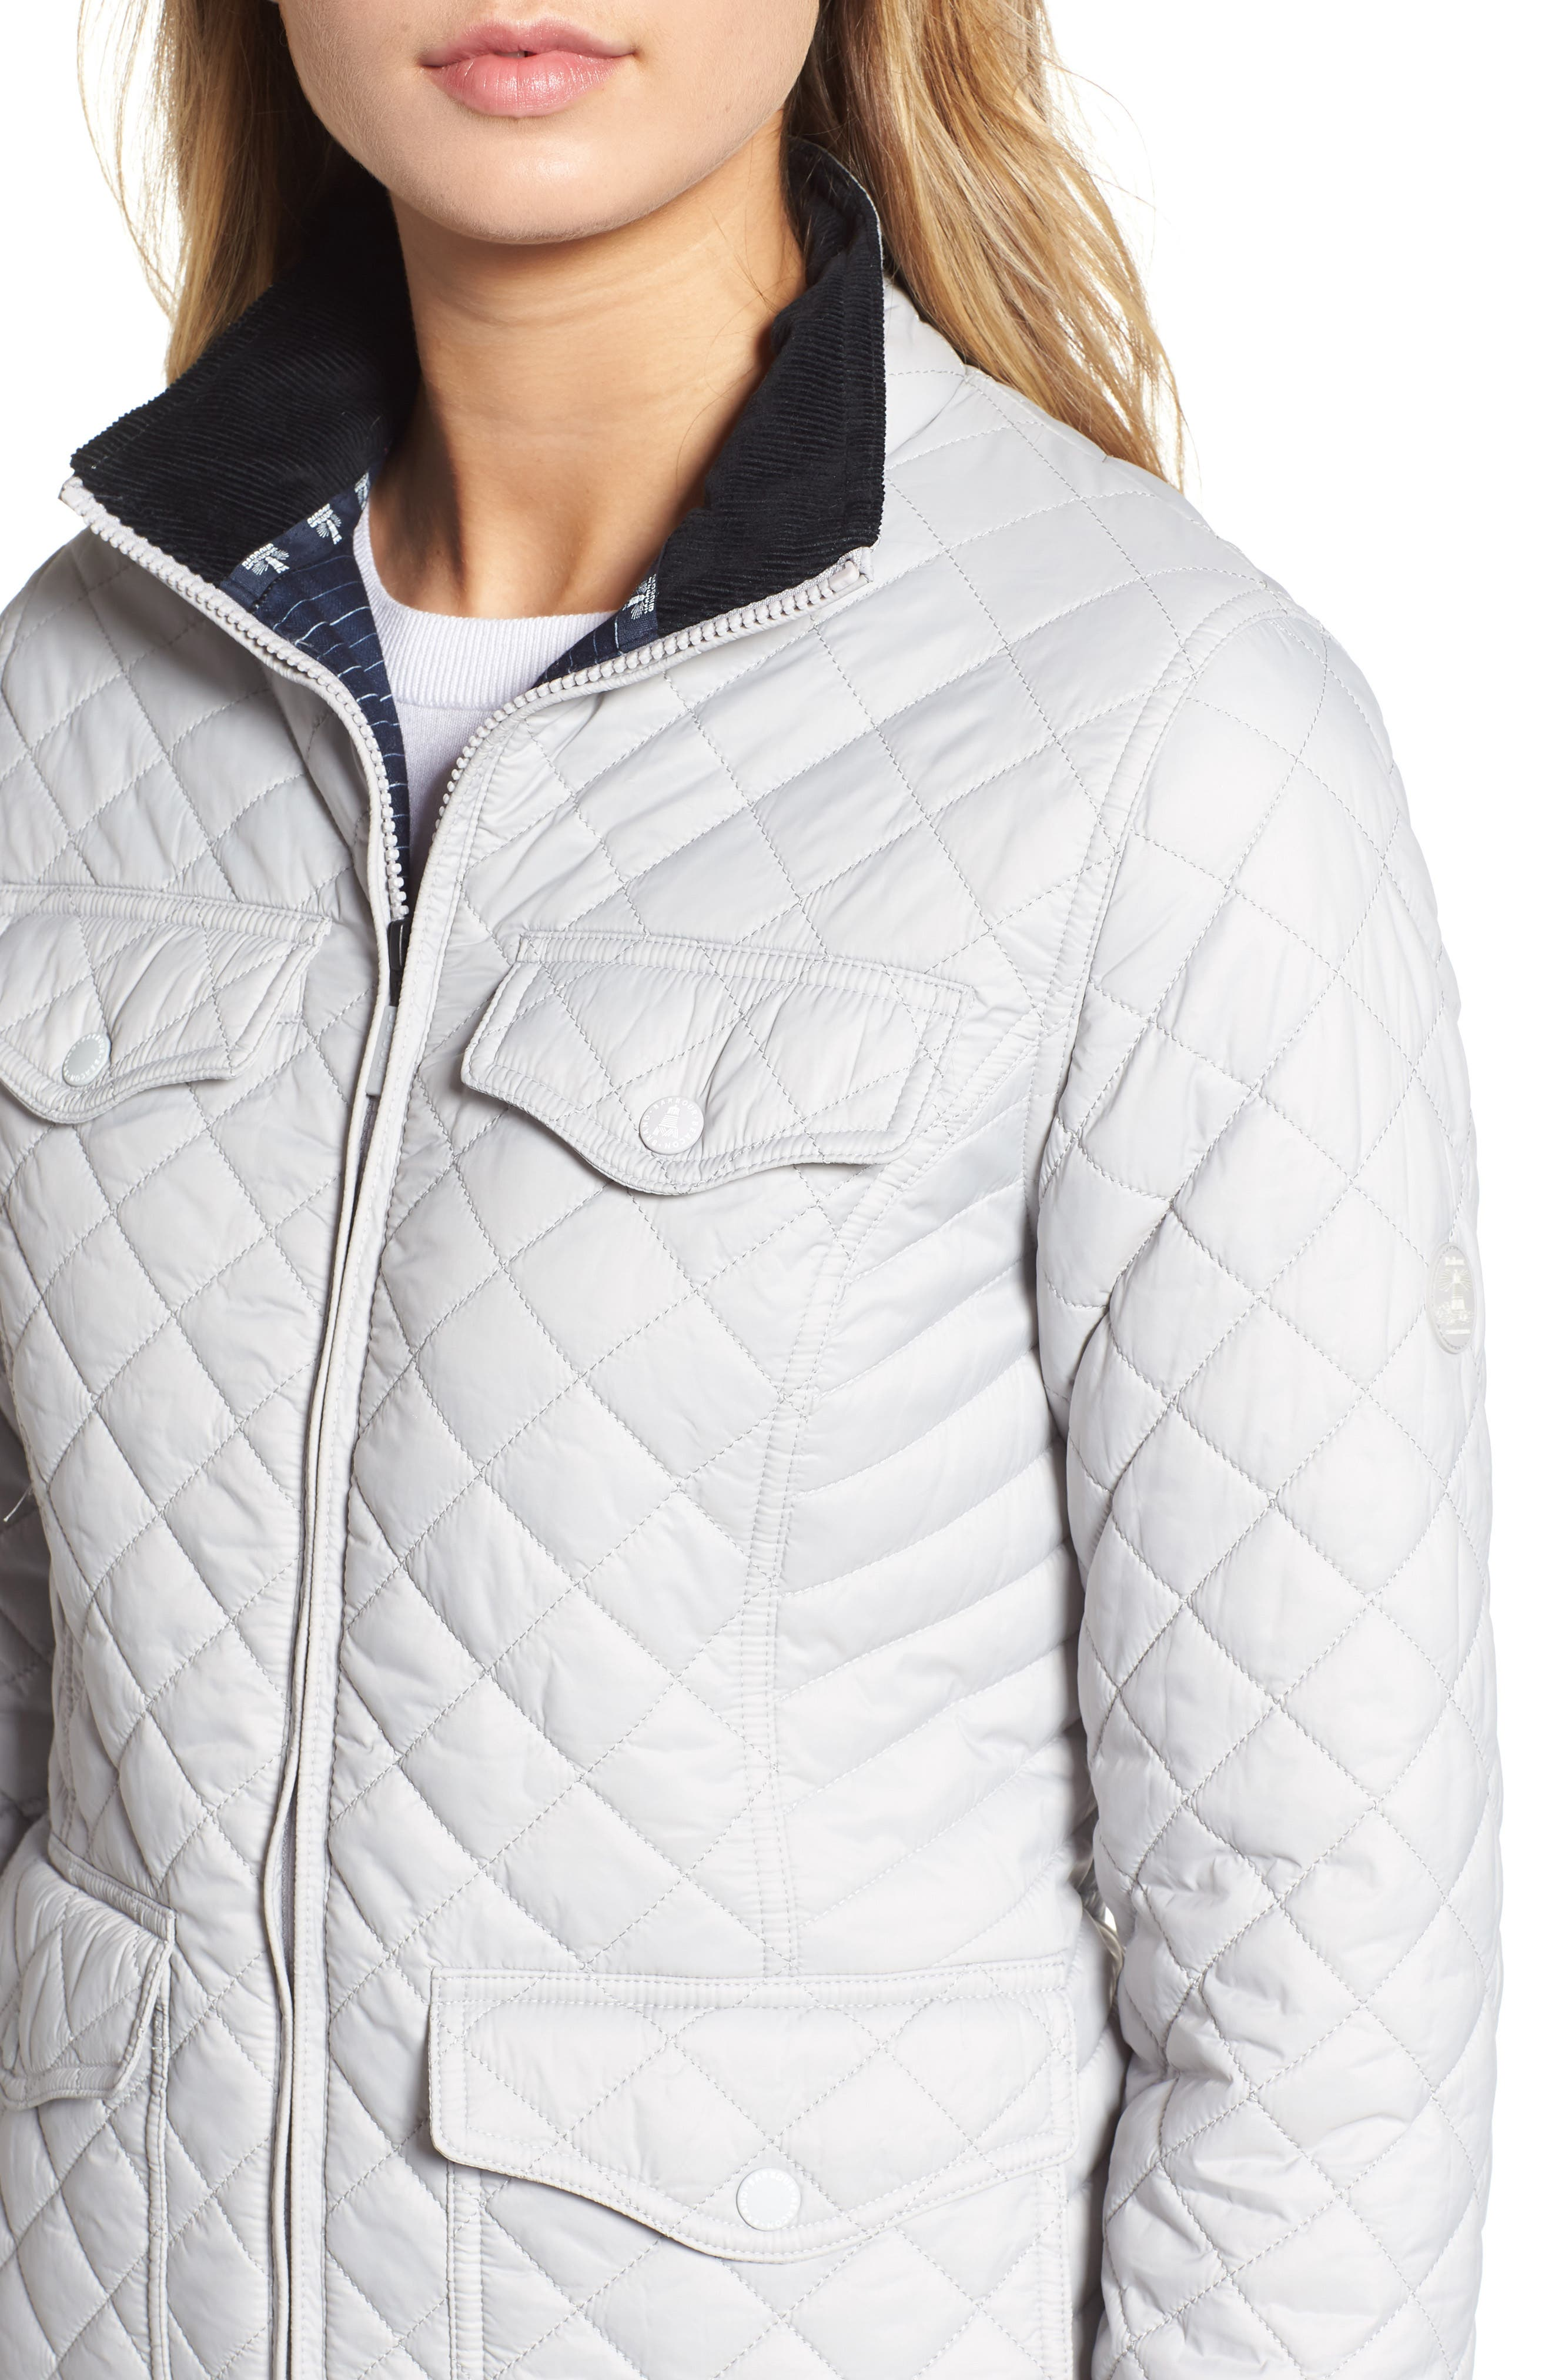 BARBOUR, Sailboat Quilted Jacket, Alternate thumbnail 5, color, 100